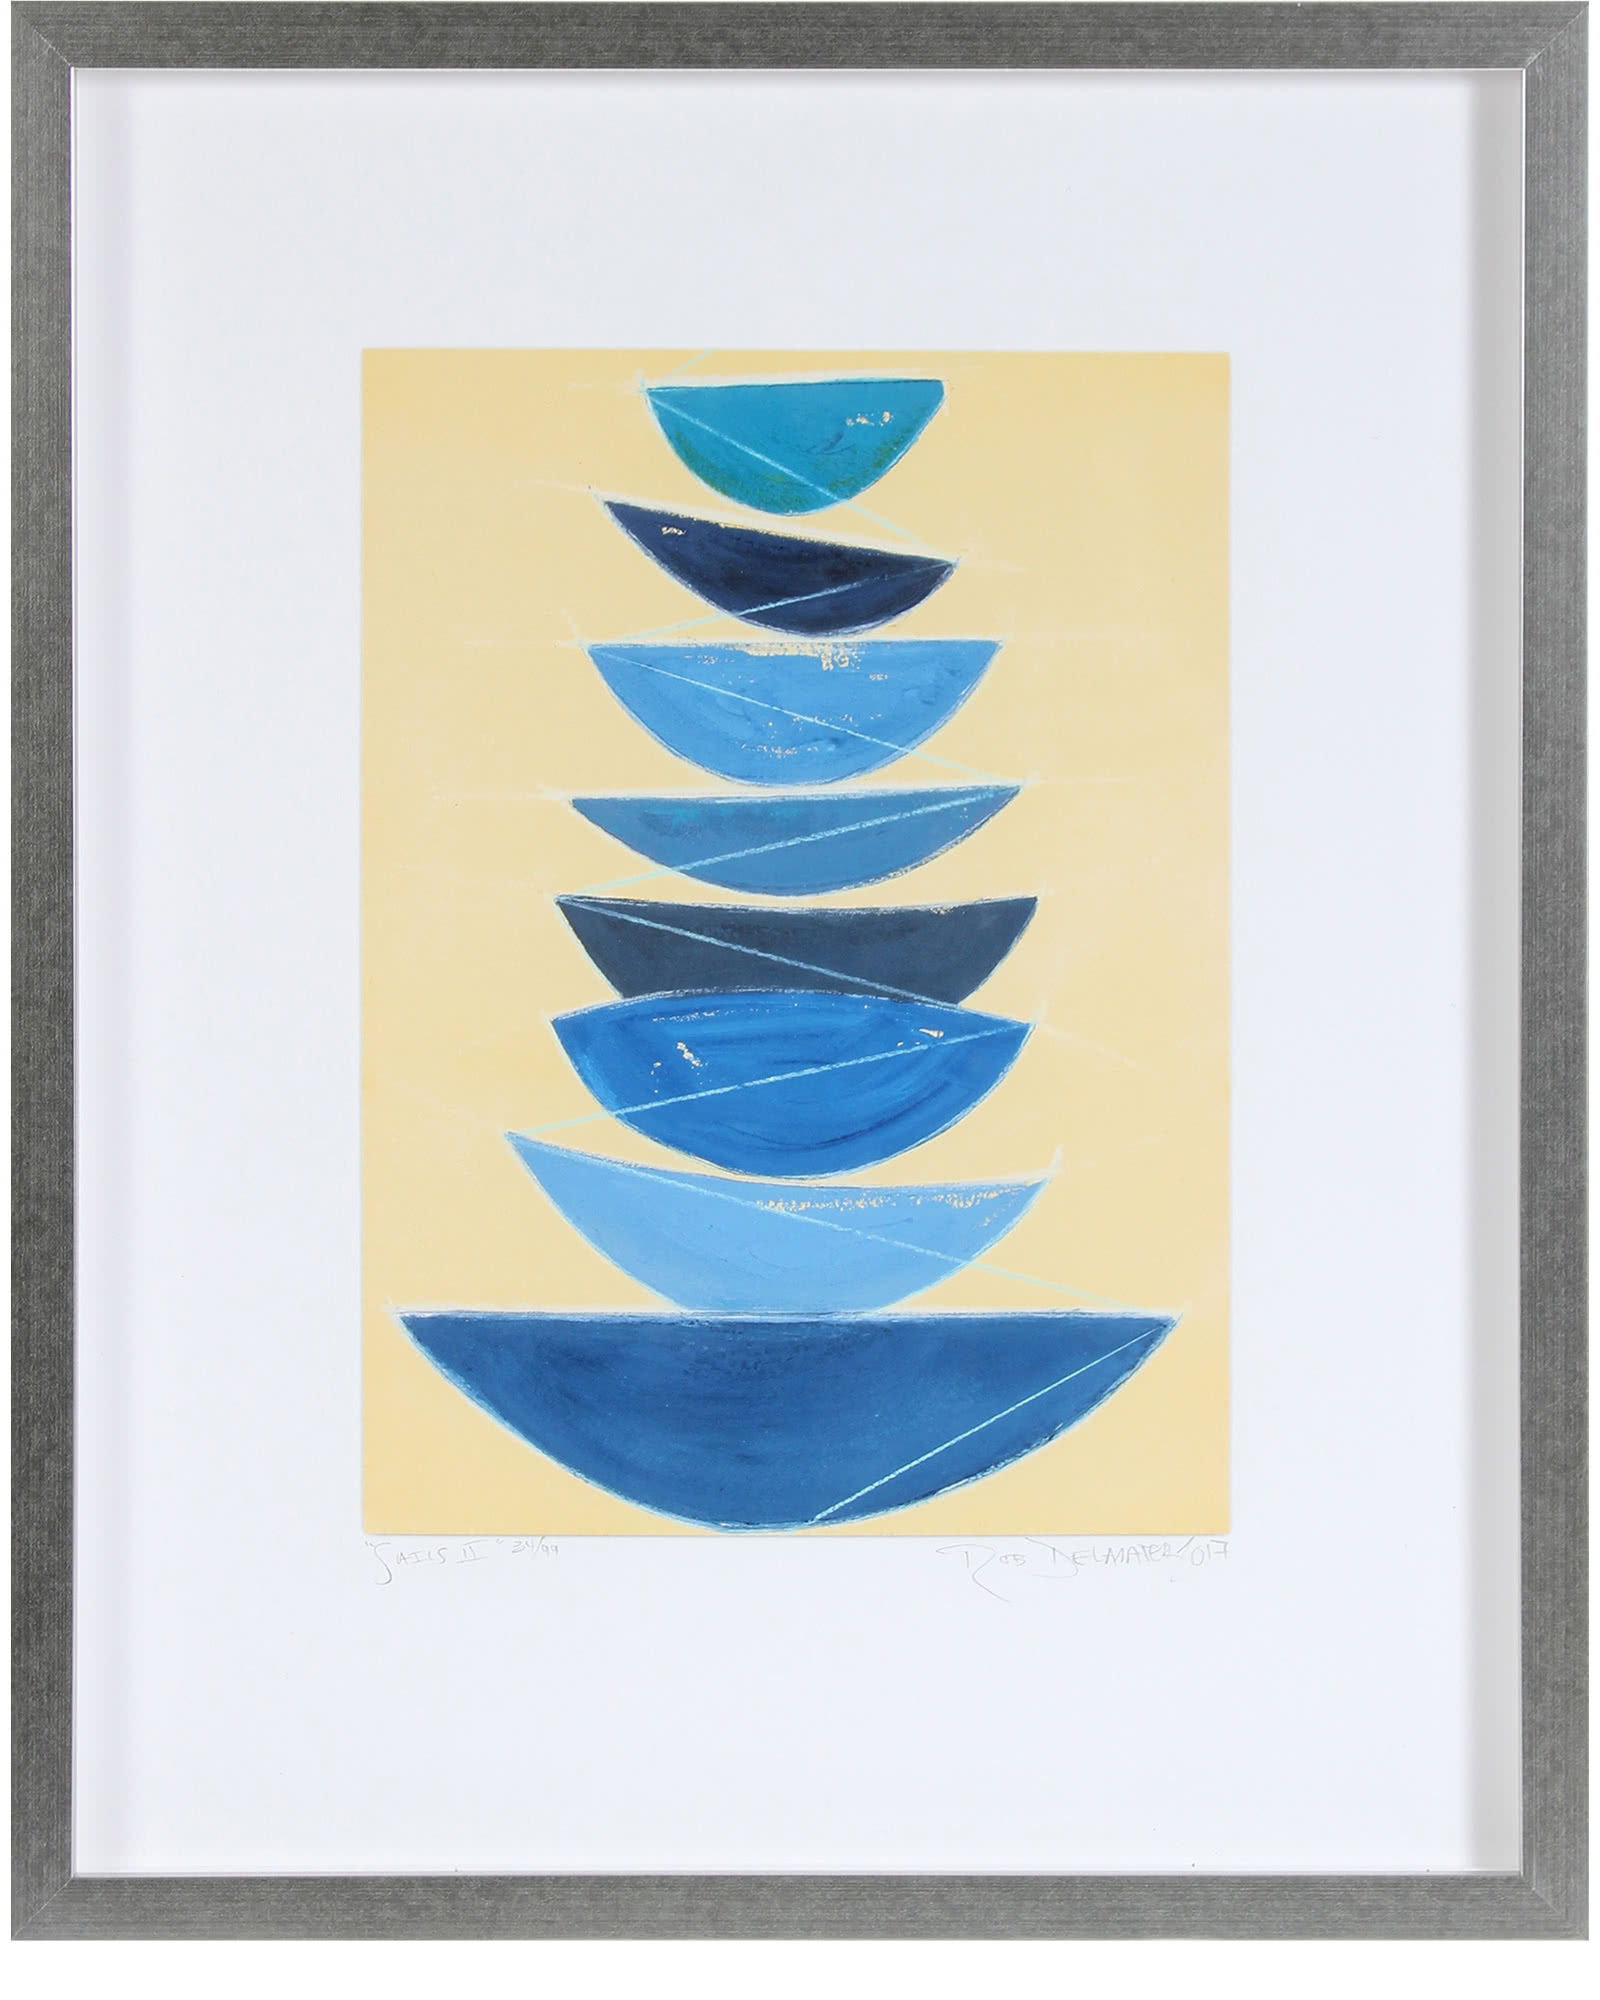 """Sails II"" by Rob Delamater,"